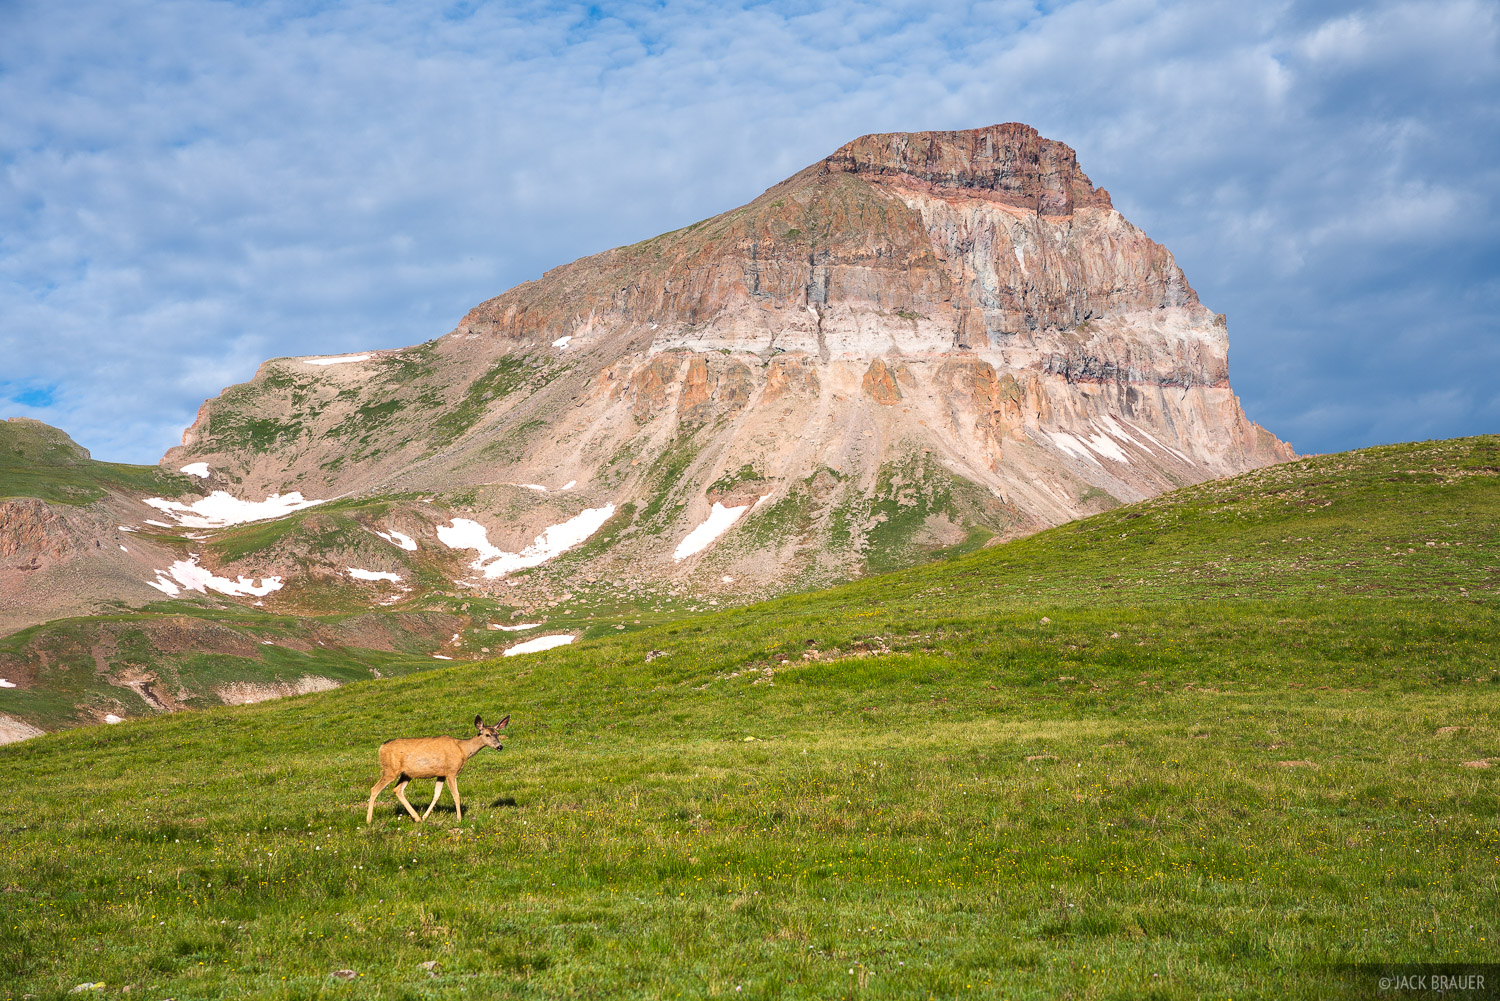 Colorado, San Juan Mountains, Uncompahgre Peak, Uncompahgre Wilderness, deer, photo